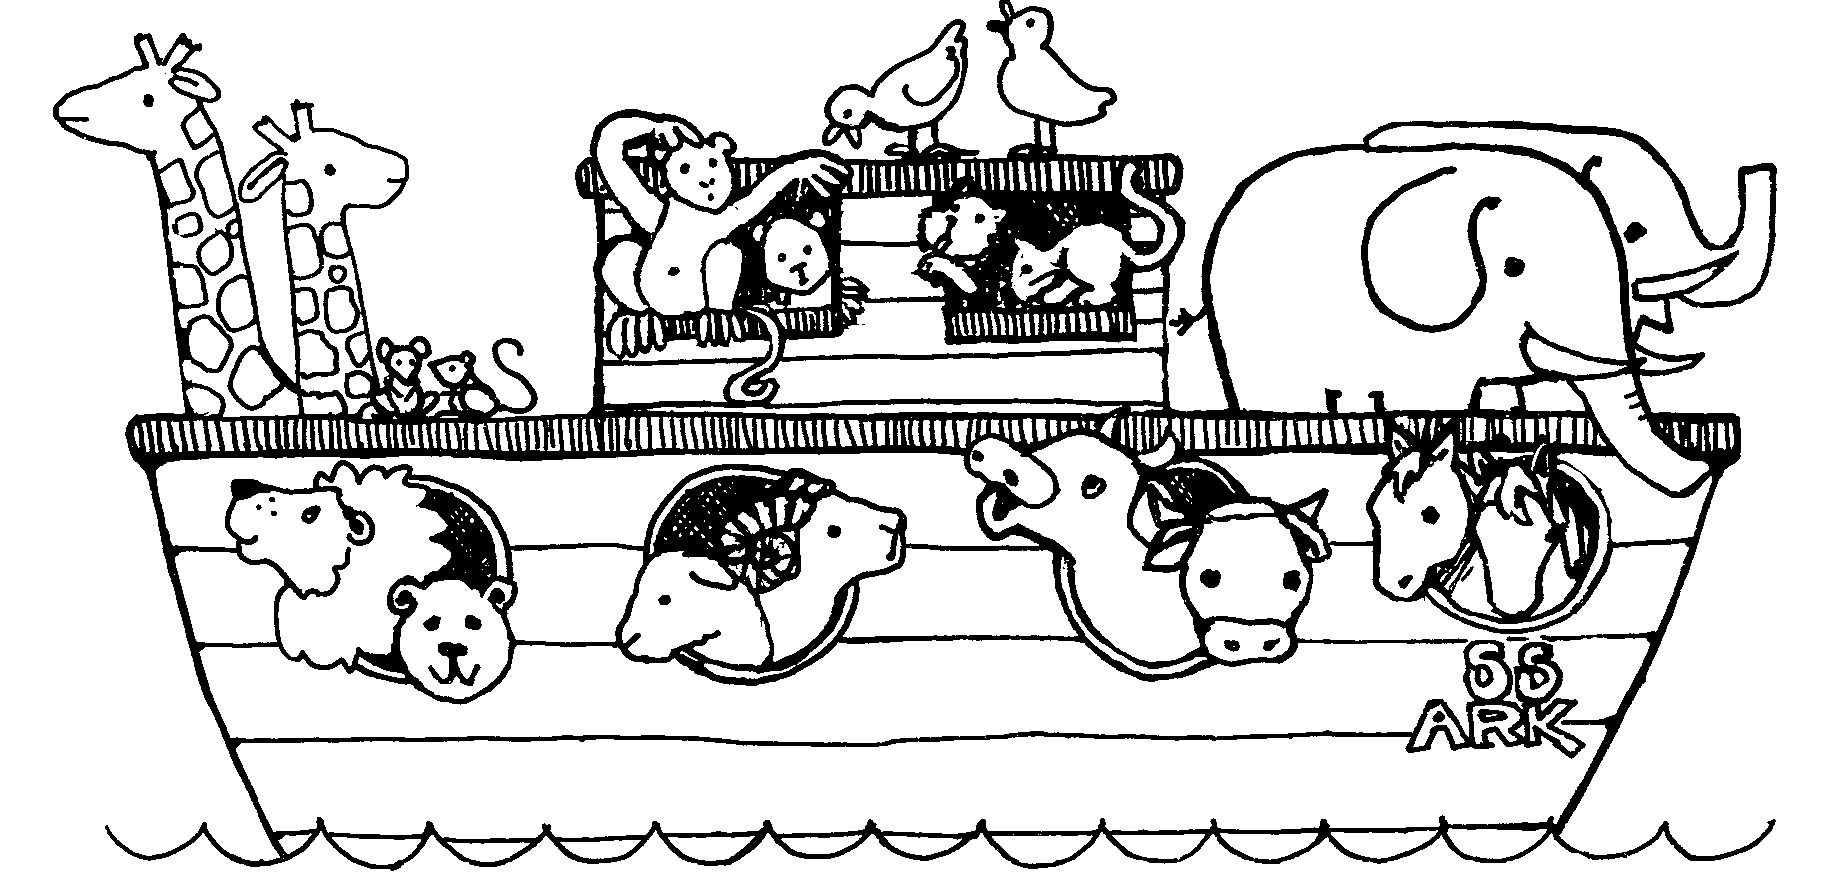 Noah S Ark Coloring Page 02 Preschool Coloring Pages Coloring